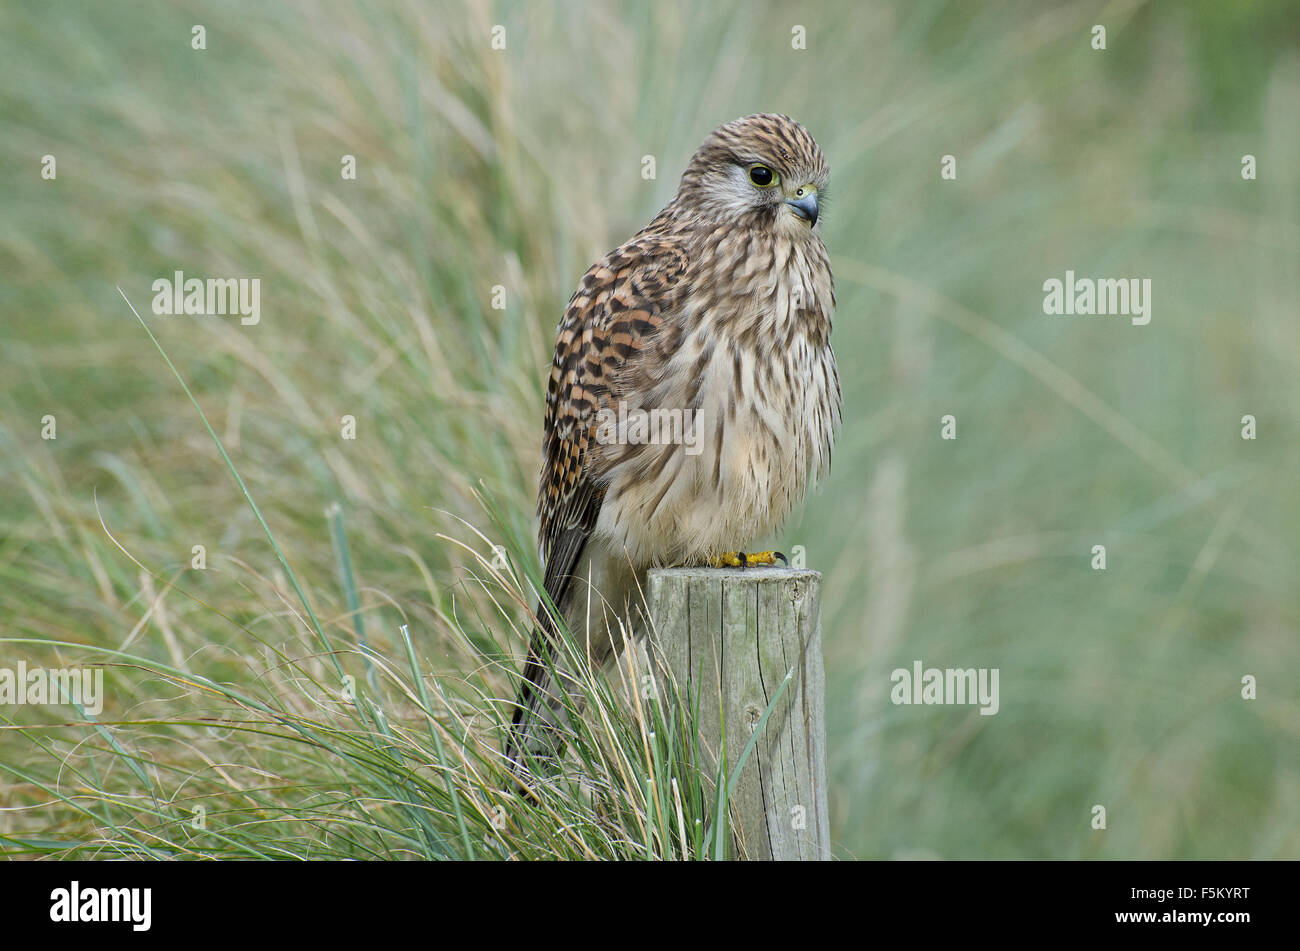 Common Kestrel perched on post in Lancashire, UK - Stock Image